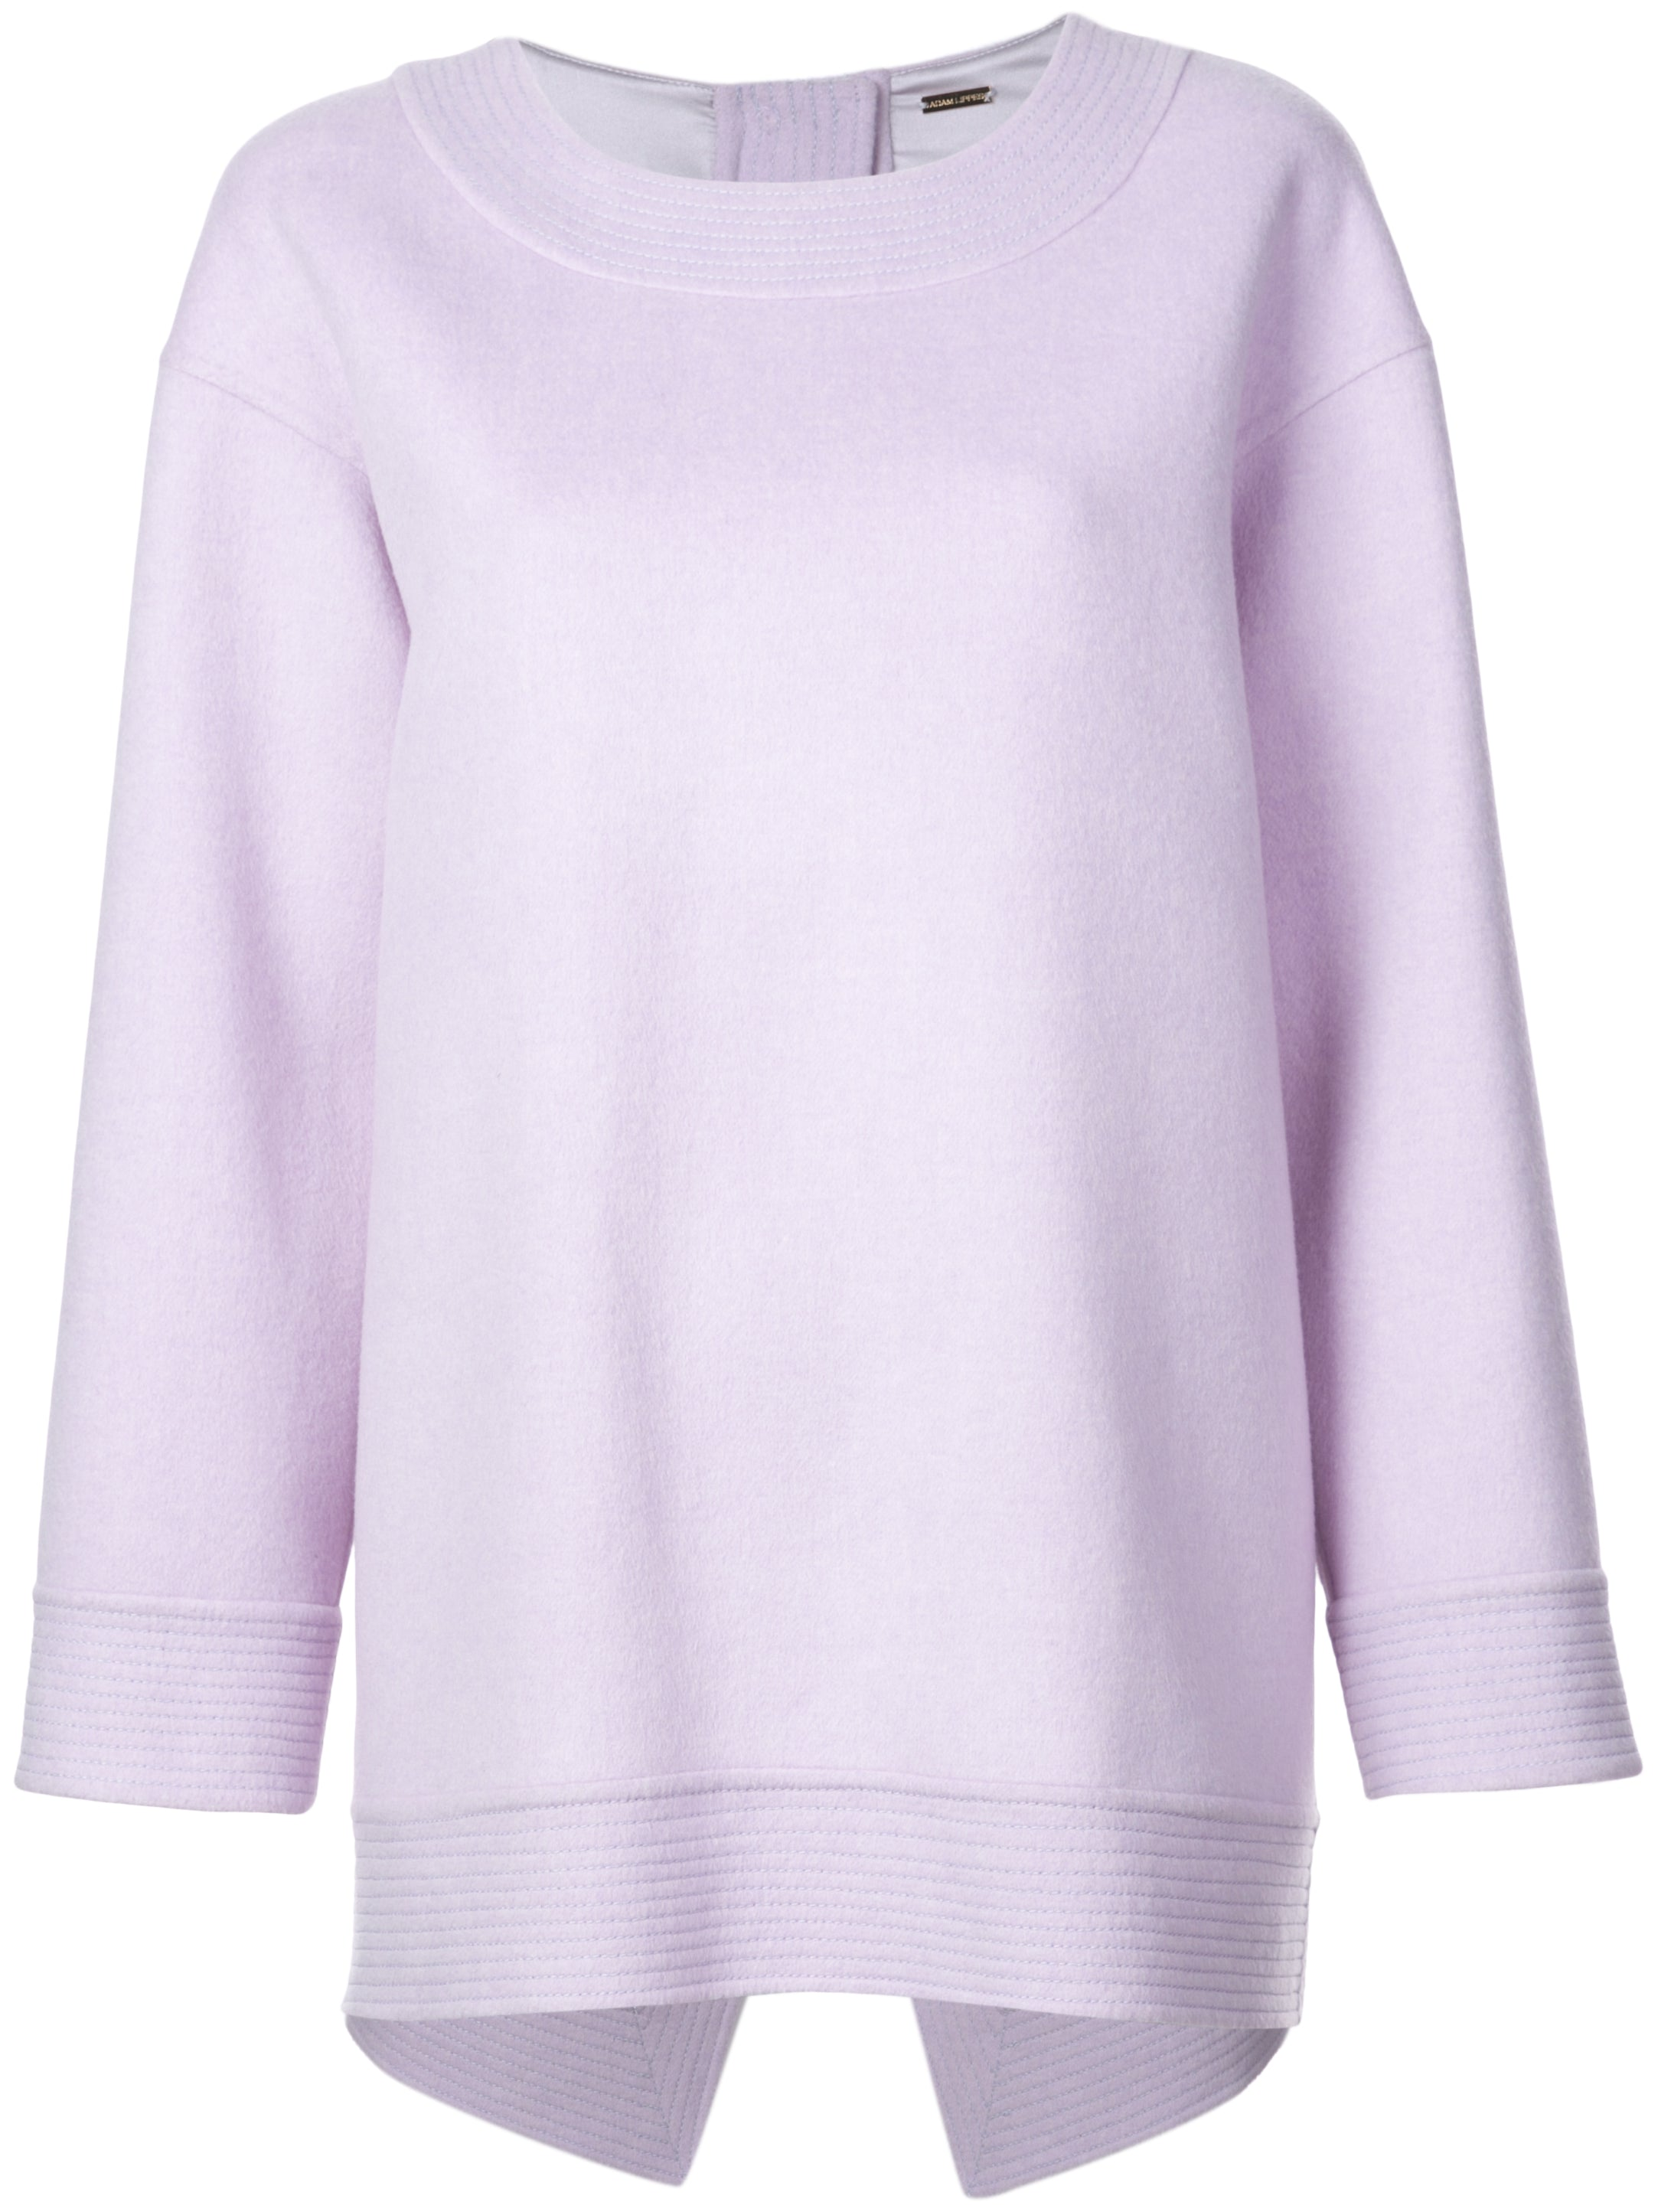 CASHMERE WOOL SWEATSHIRT WITH CROSS BACK